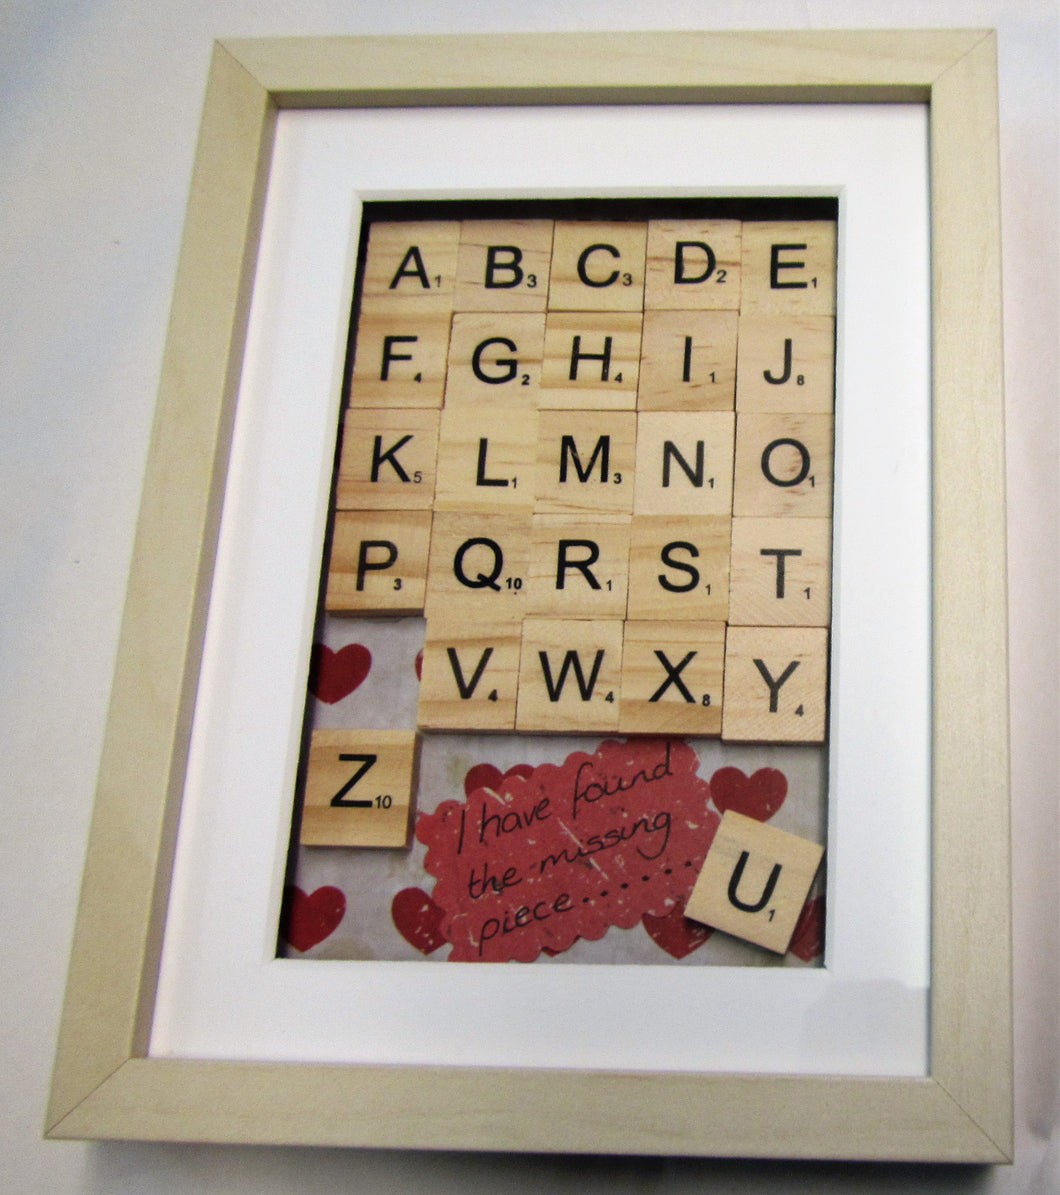 Handcrafted scrabble picture